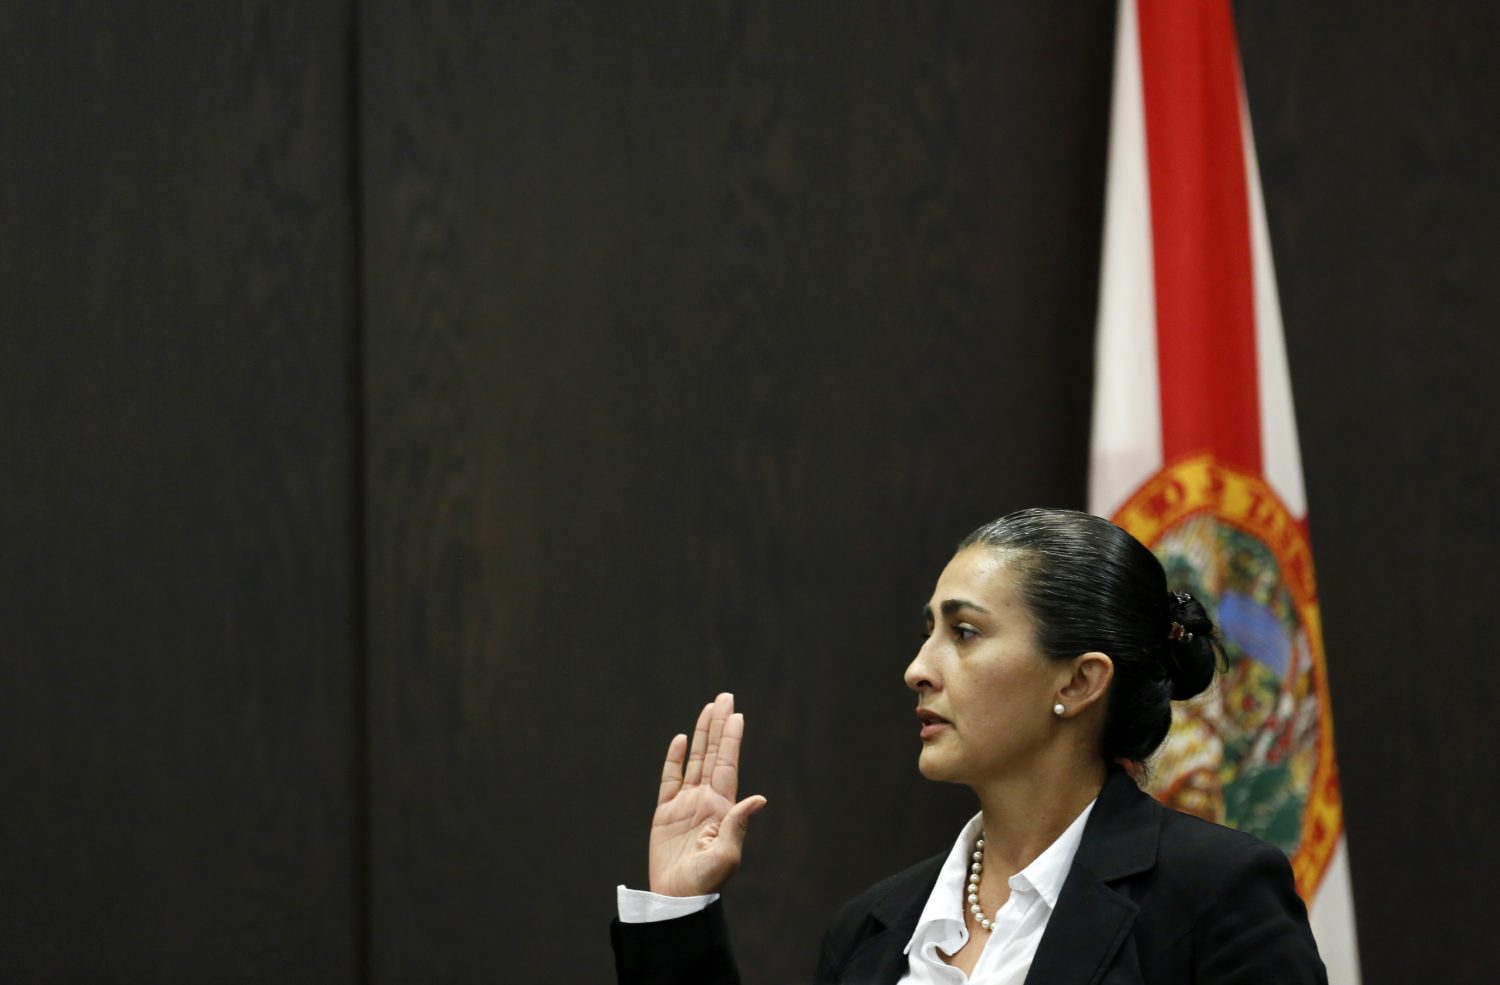 Claudia Aguilar, the mother of slain University of Florida student Christian Aguilar, is sworn in before testifying in the murder trial of Pedro Bravo in courtroom 1B of the Alachua County Criminal Justice Center Tuesday, August 5, 2014.  (Doug Finger/The Gainesville Sun/Pool)